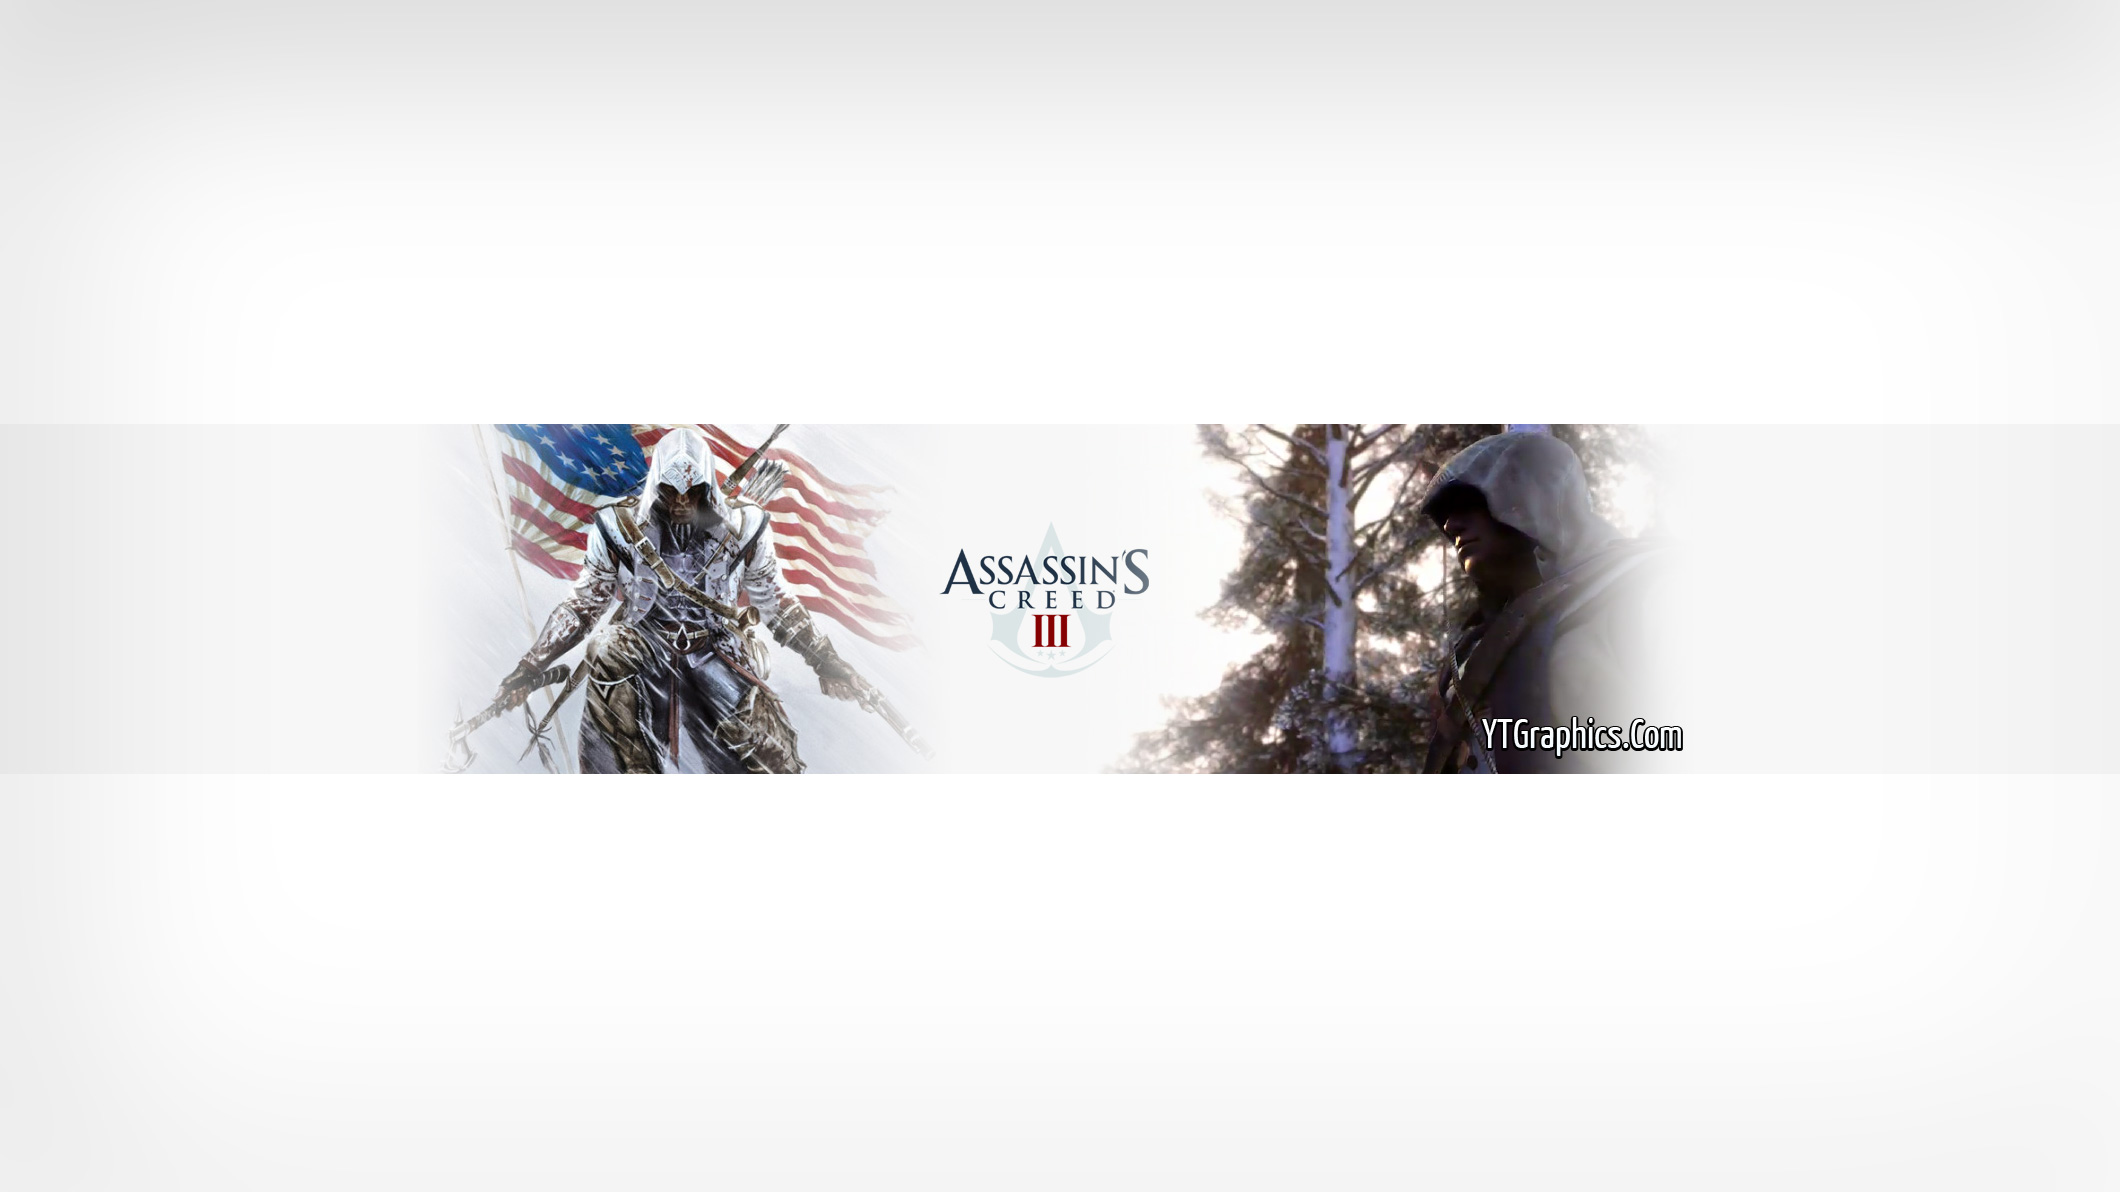 Creed 3 youtube channel art banner youtube channel art banners